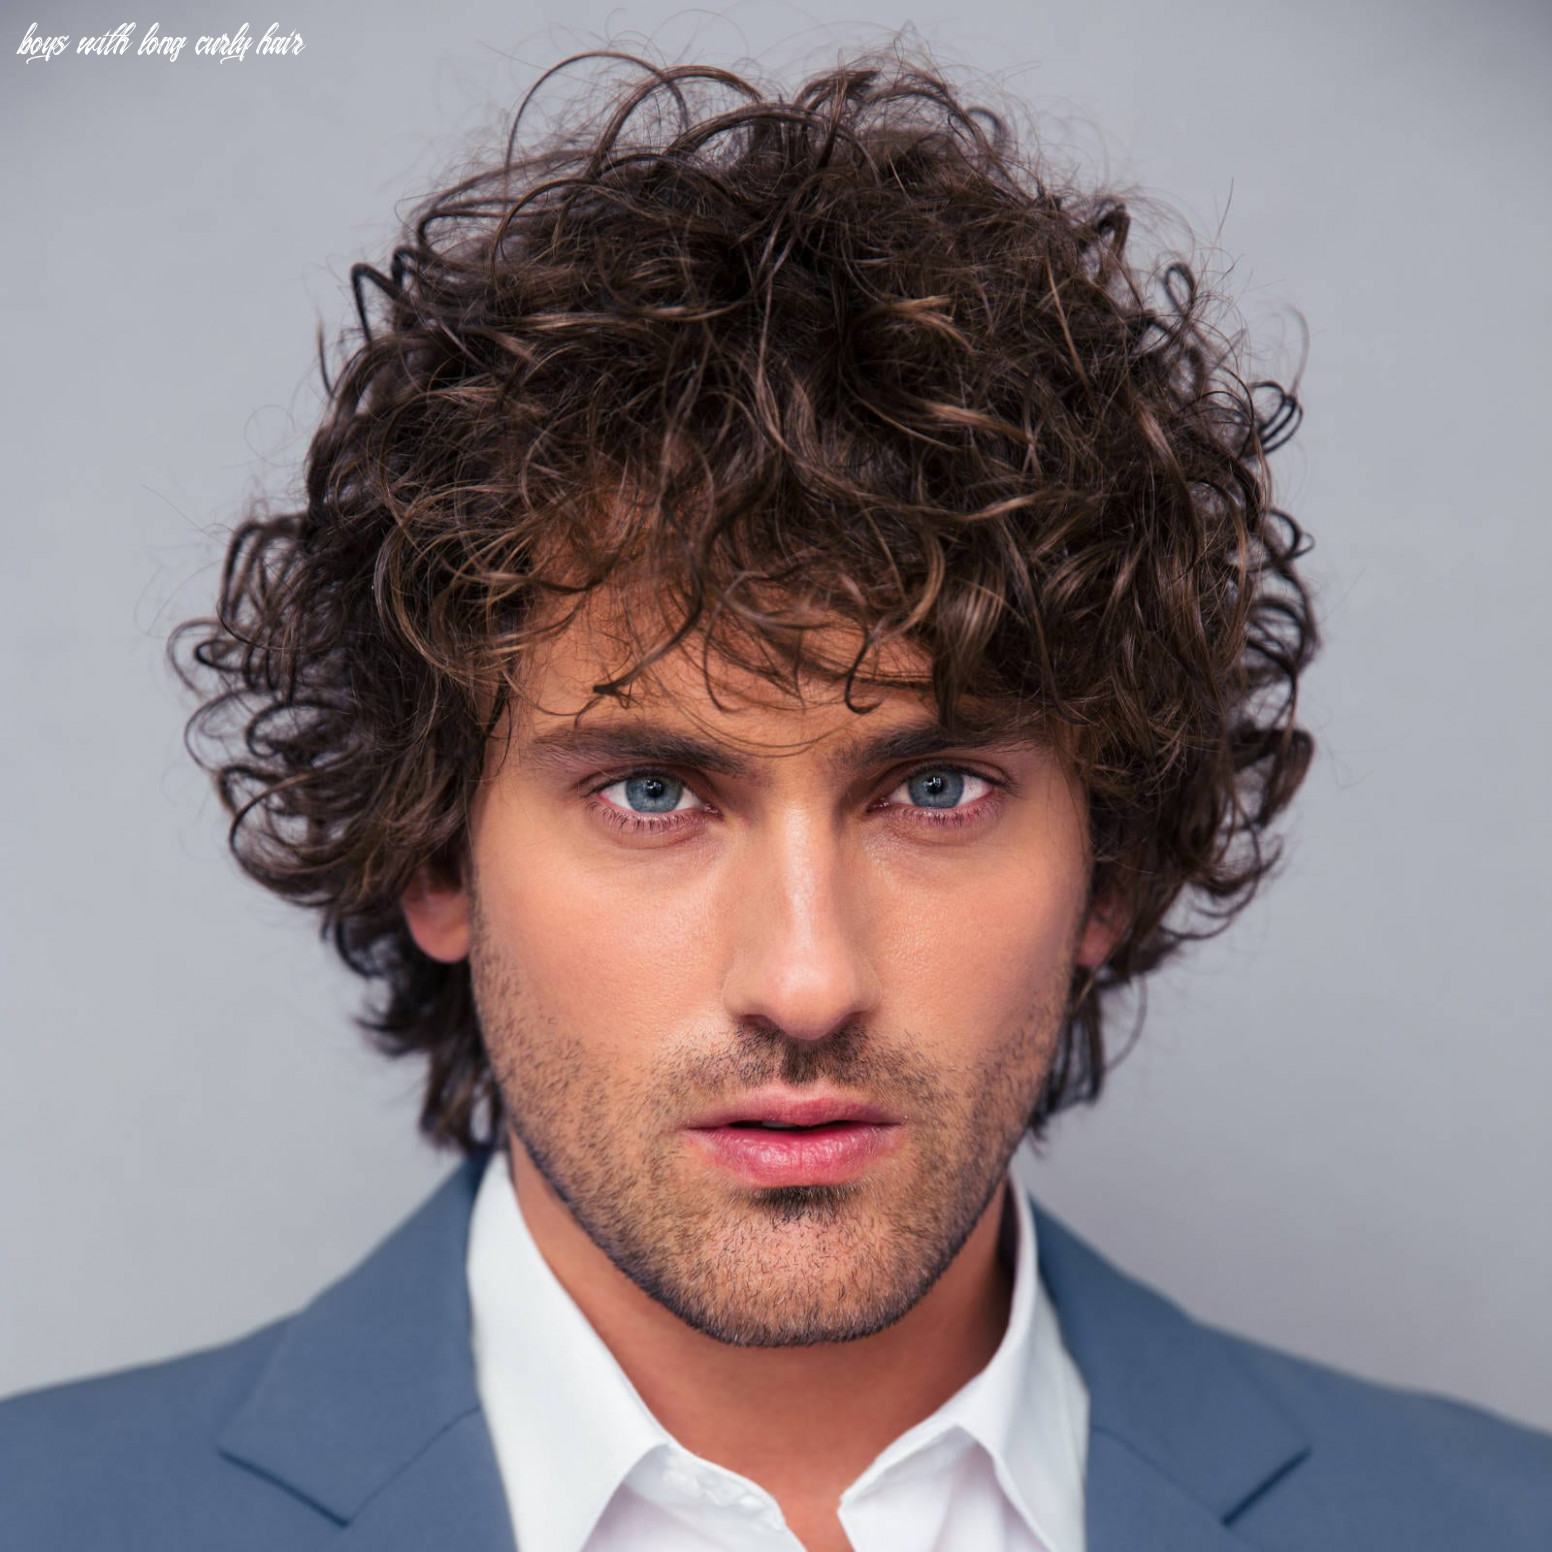 The 10 Best Curly Hairstyles for Men | Improb